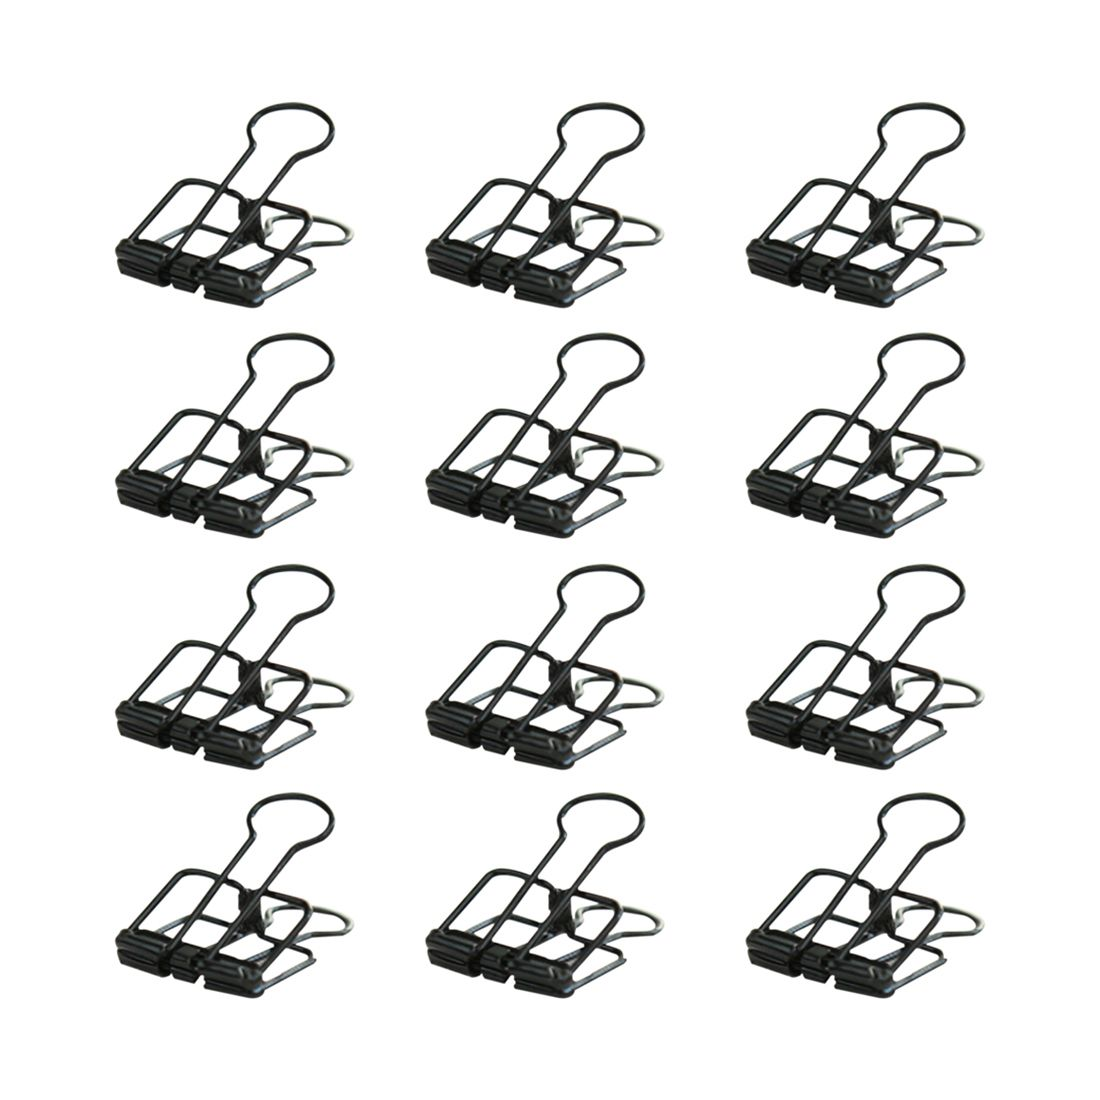 Book Reading Paper Clips Metal Card File Note Clips For Office School Wedding Decoration Pack 12pcs Office Binding Supplies Office & School Supplies